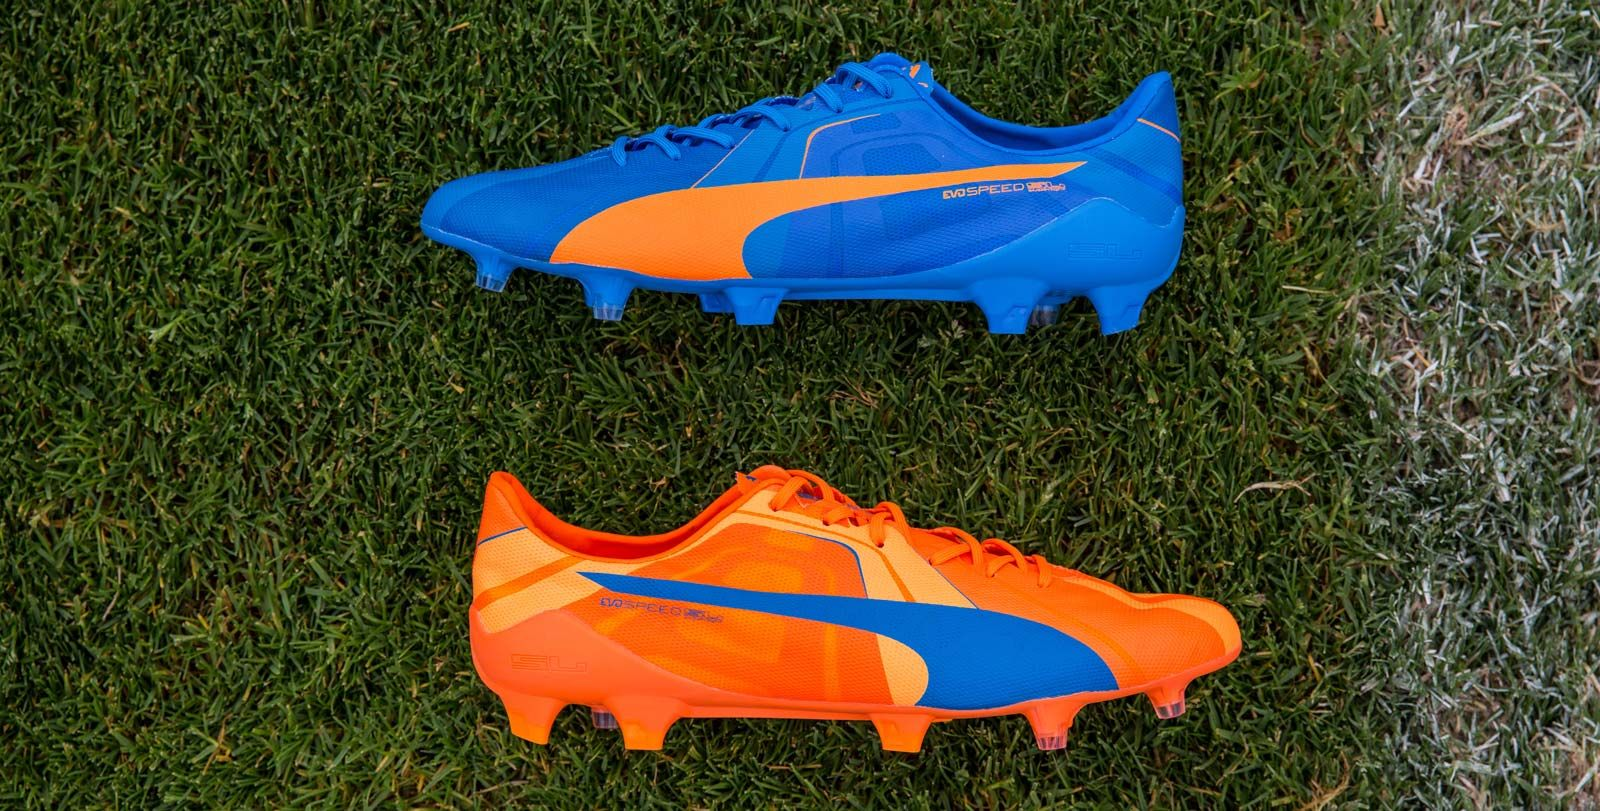 The left boot is blue, the right boot is orange. The new Puma evoSPEED